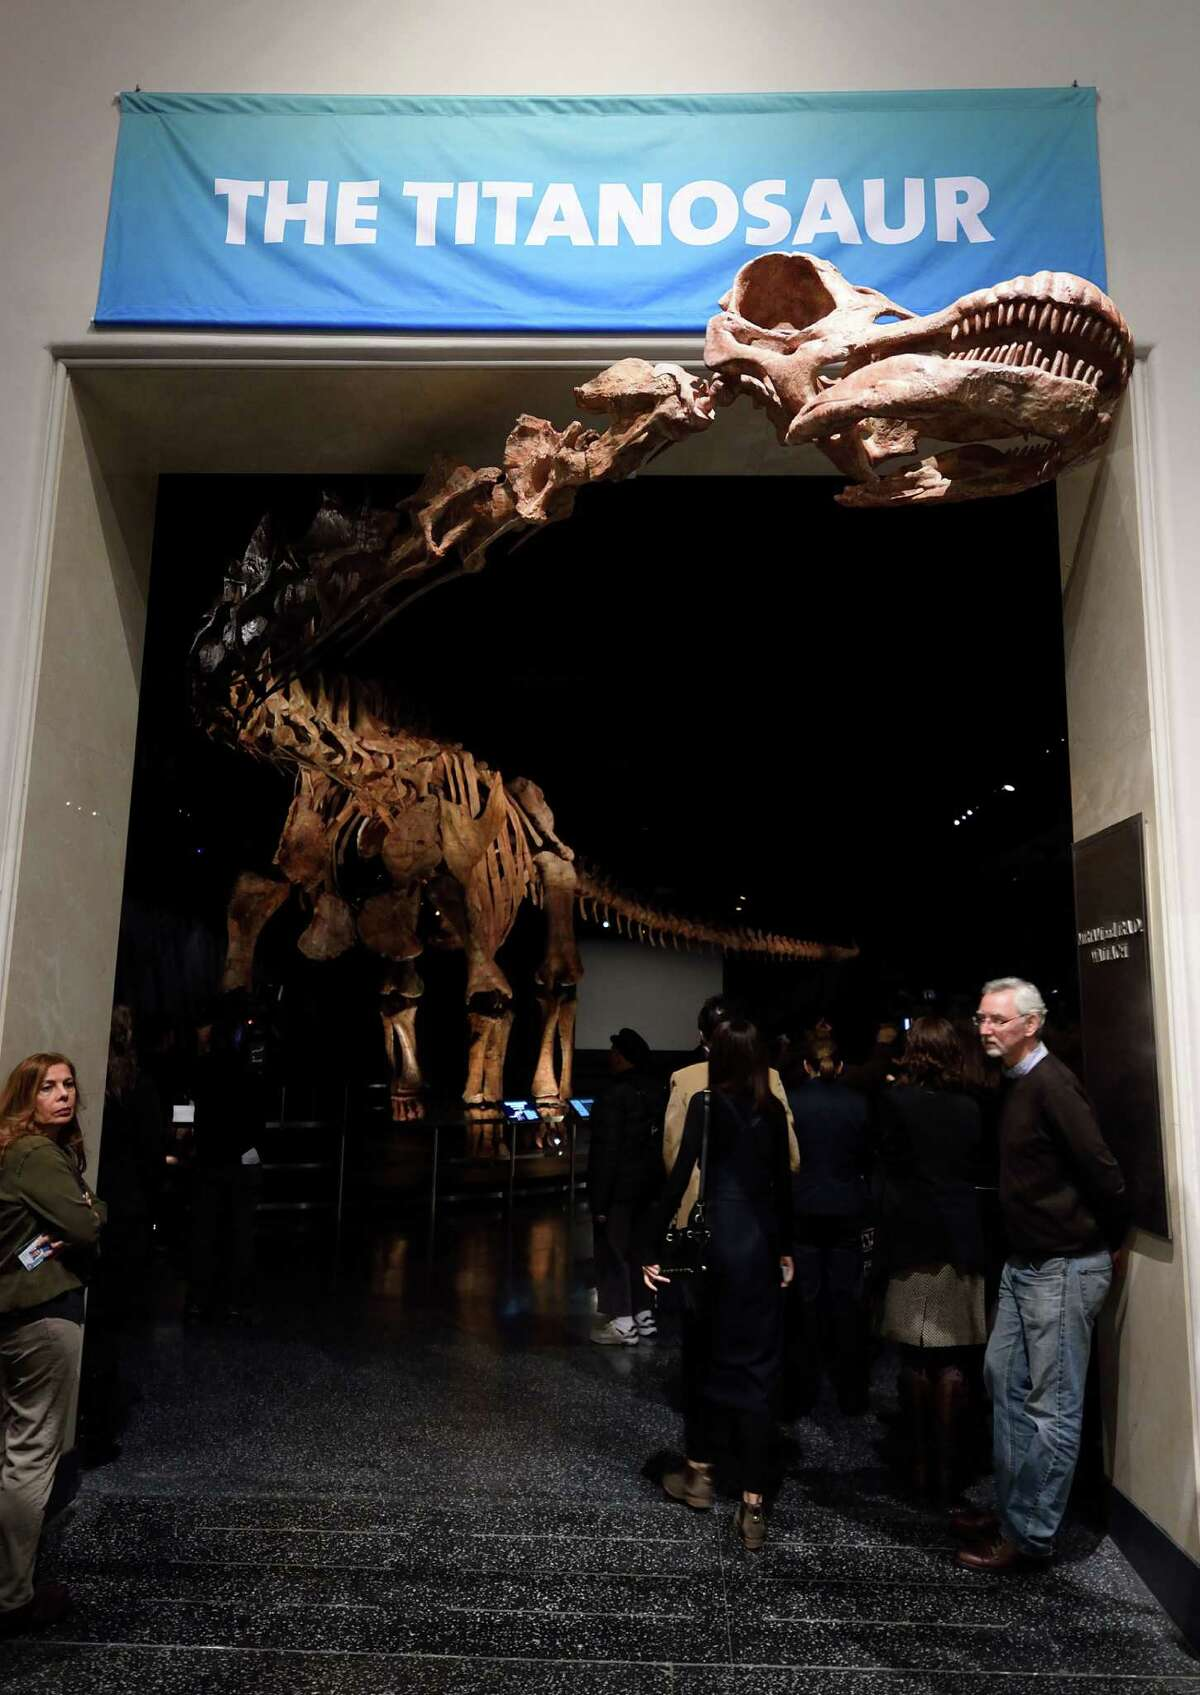 The Titanosaur, the largest dinosaur ever displayed at the American Museum of Natural History, is unveiled at a news conference January 14, 2016 in New York. The dinosaur was discovered in 2014, in Argentina's Patagonia region.